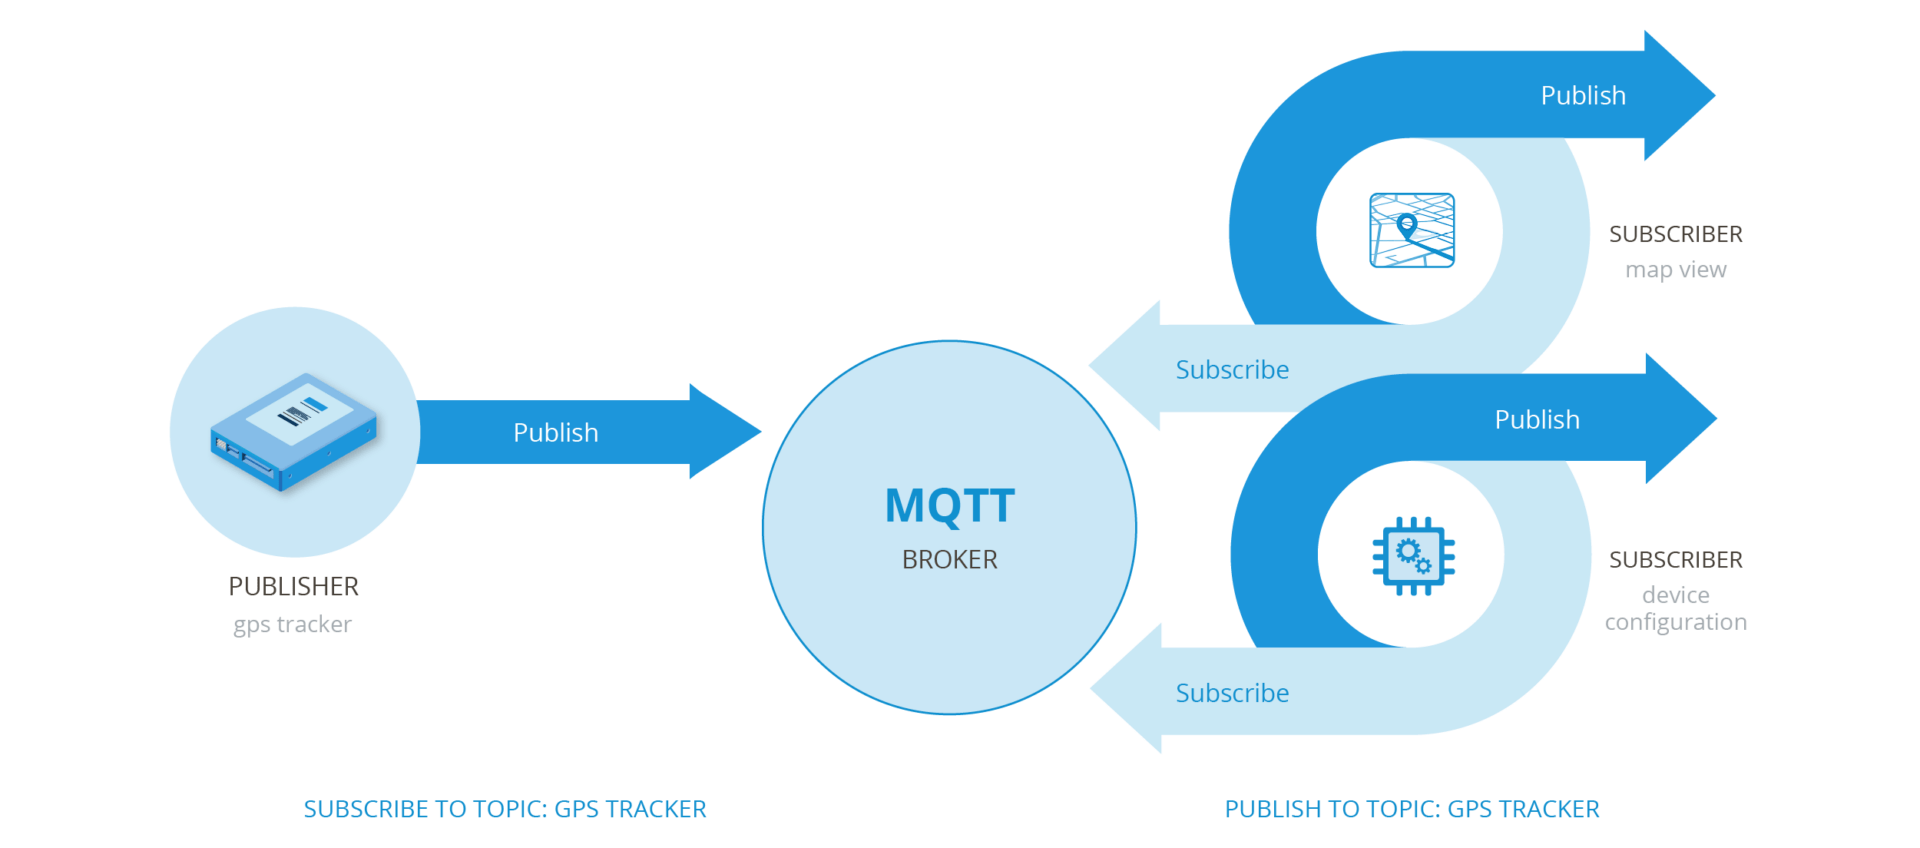 Publish & Subscribe model with a GPS tracker as the publisher, a Navixy MQTT broker, and map views and device configurations as subscribers